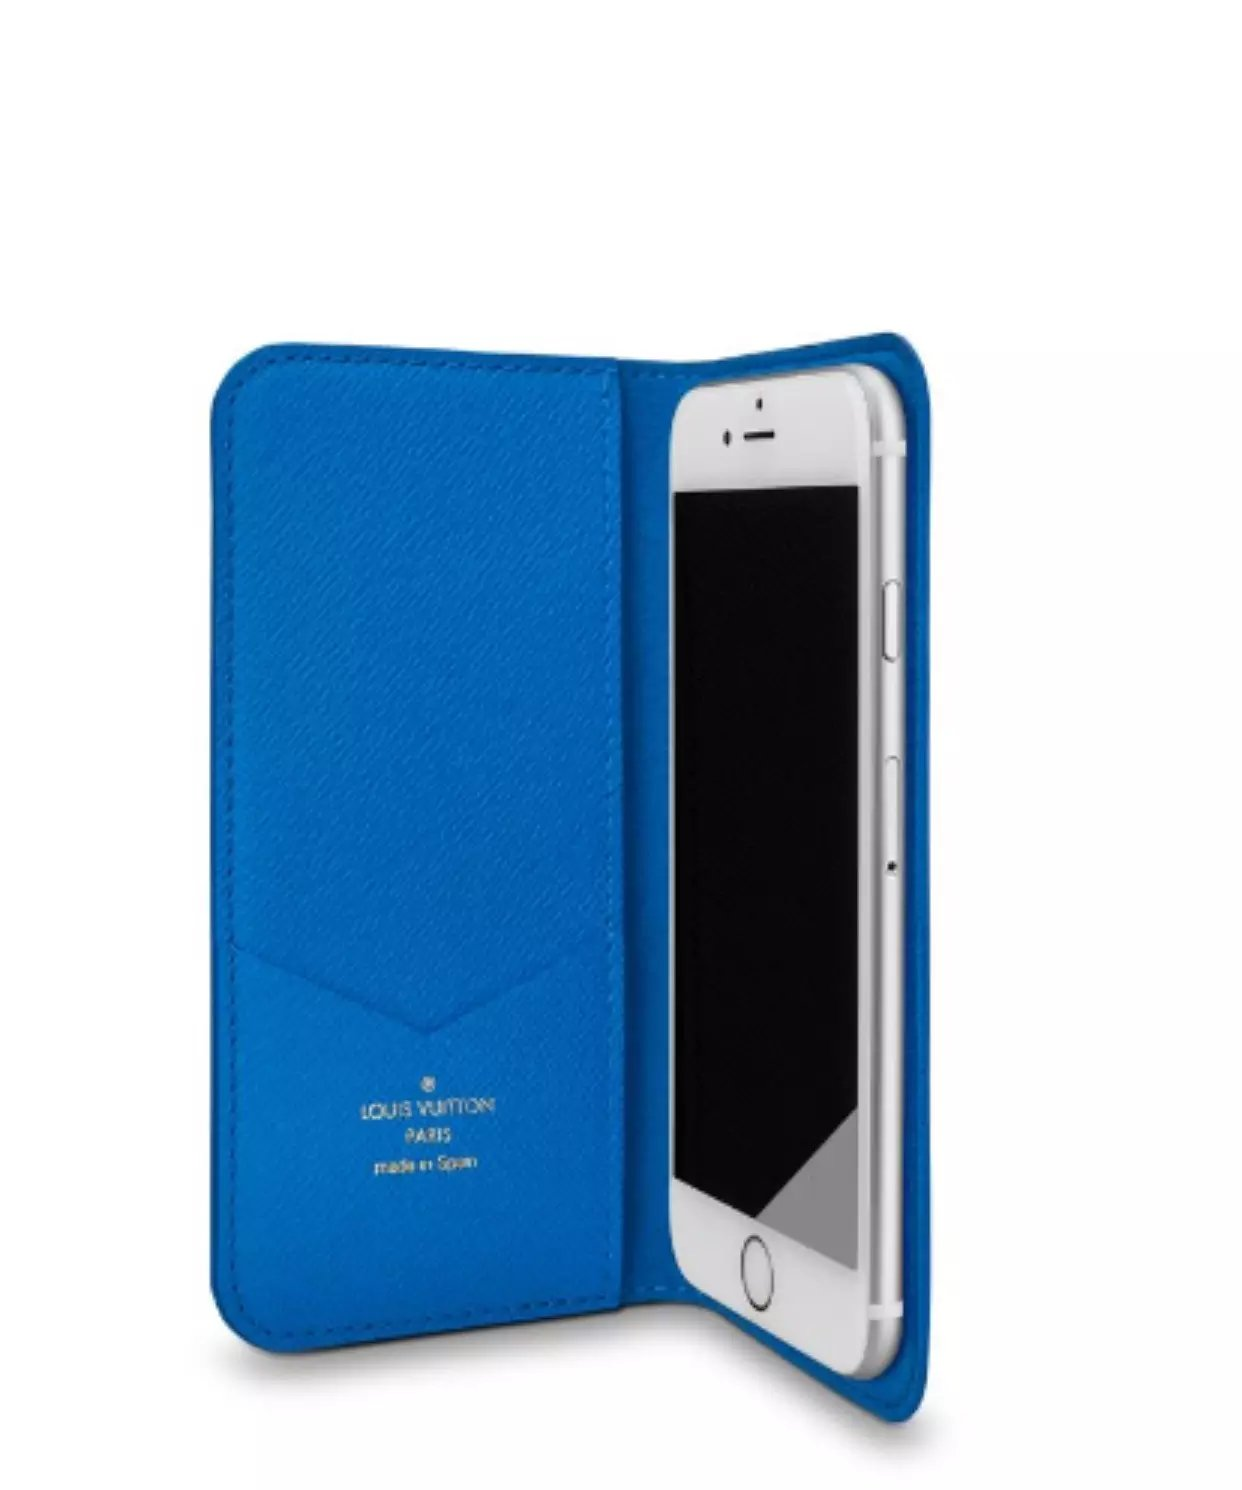 iphone case selbst gestalten günstig iphone silikonhülle selbst gestalten Louis Vuitton iphone 8 hüllen iphone hülle drucken iphone 8 brieftasche ipod hüllen 8 leder cover iphone 8 iphone 8 neuigkeiten wann erscheint neues iphone